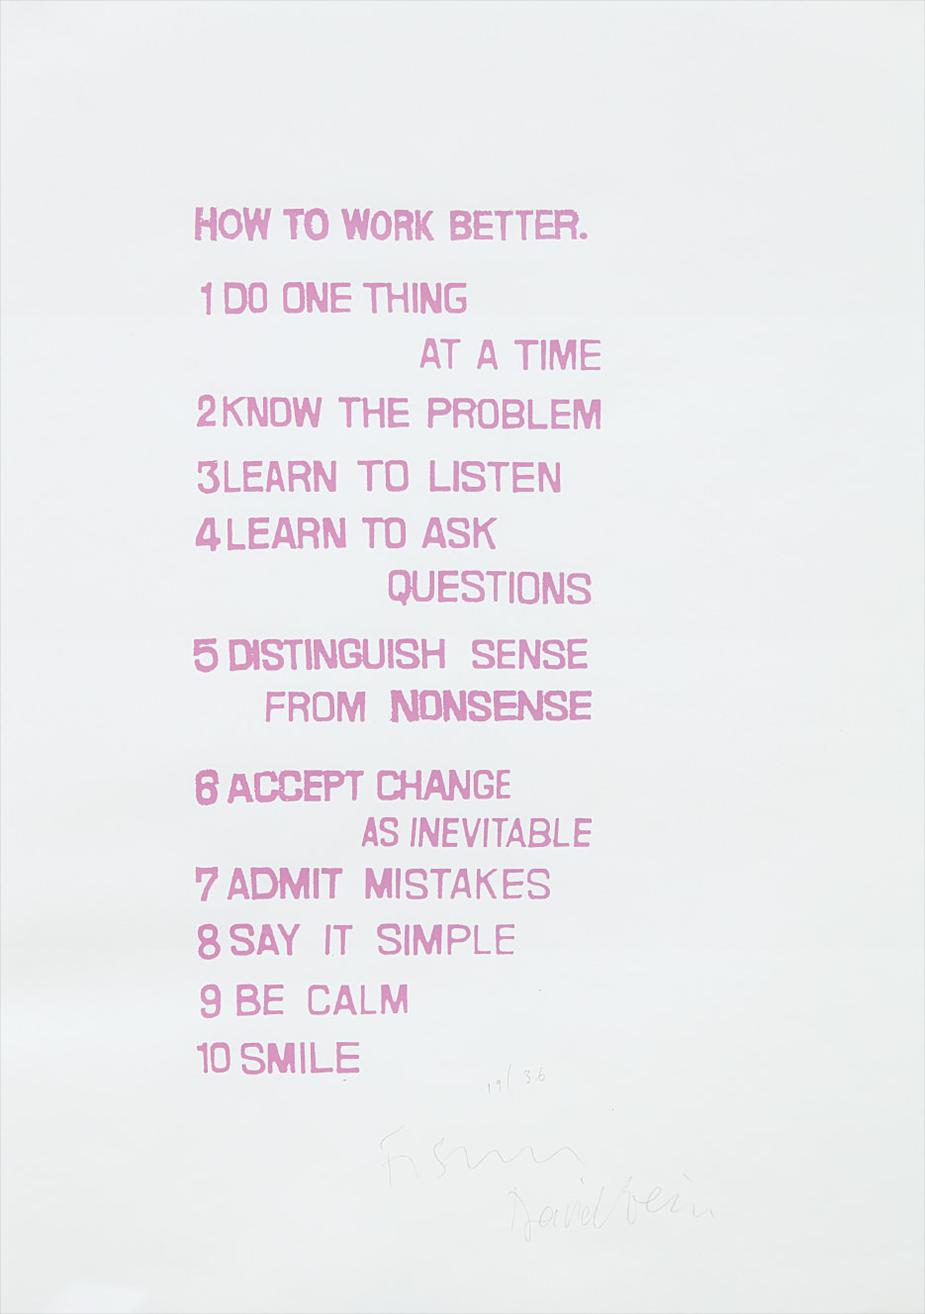 Peter Fischli & David Weiss-How To Work Better-1991